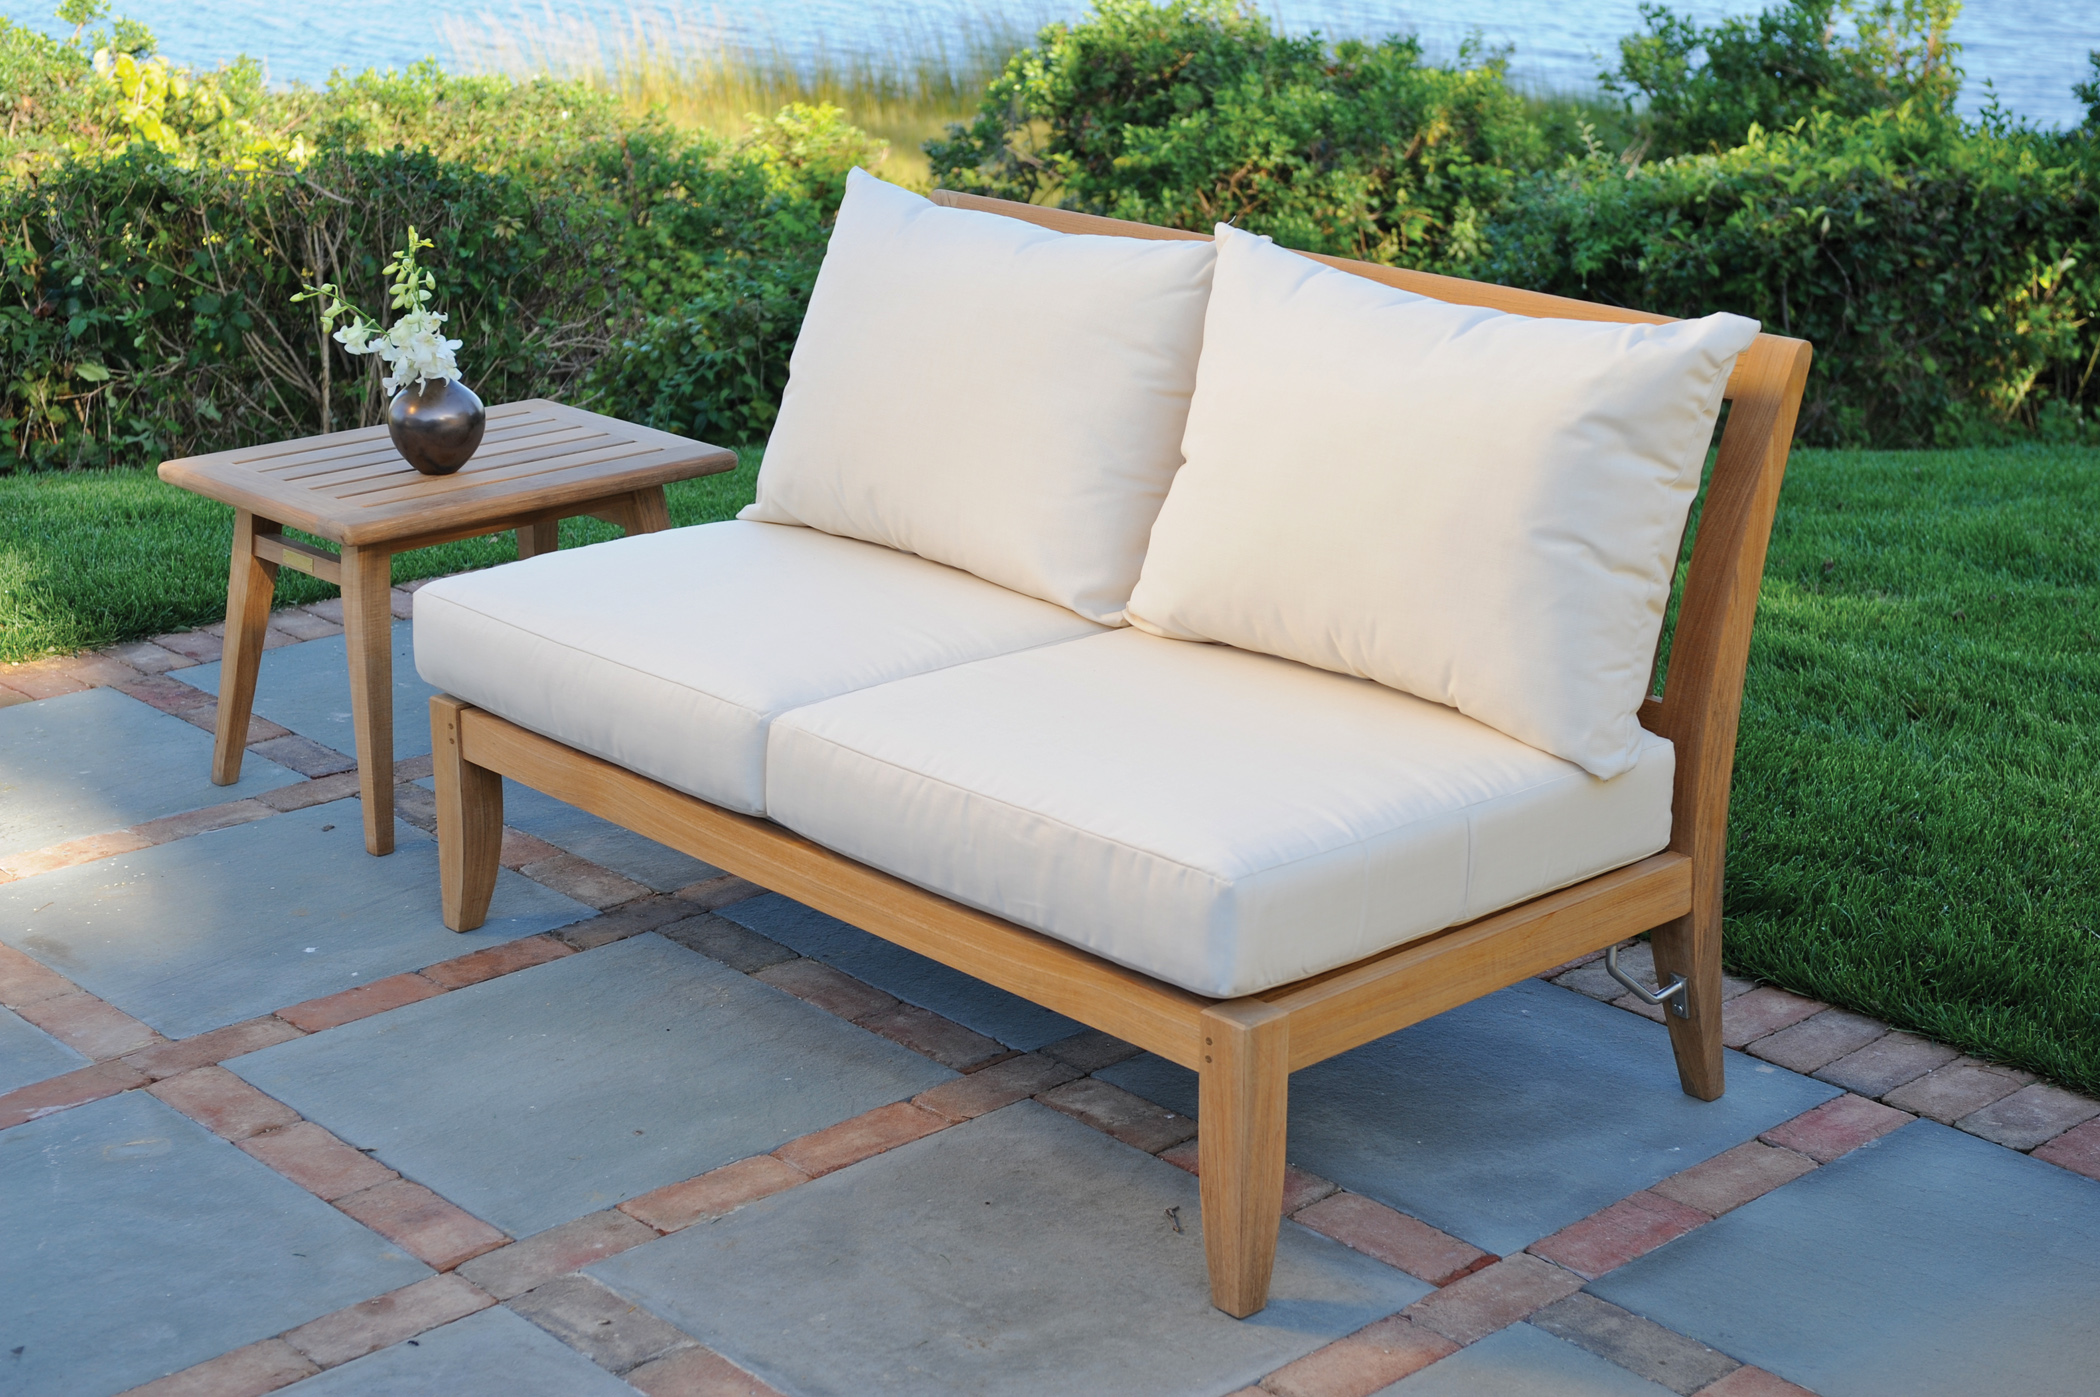 Kingsley-Bate Ipanema Teak Sectional-Armless Settee